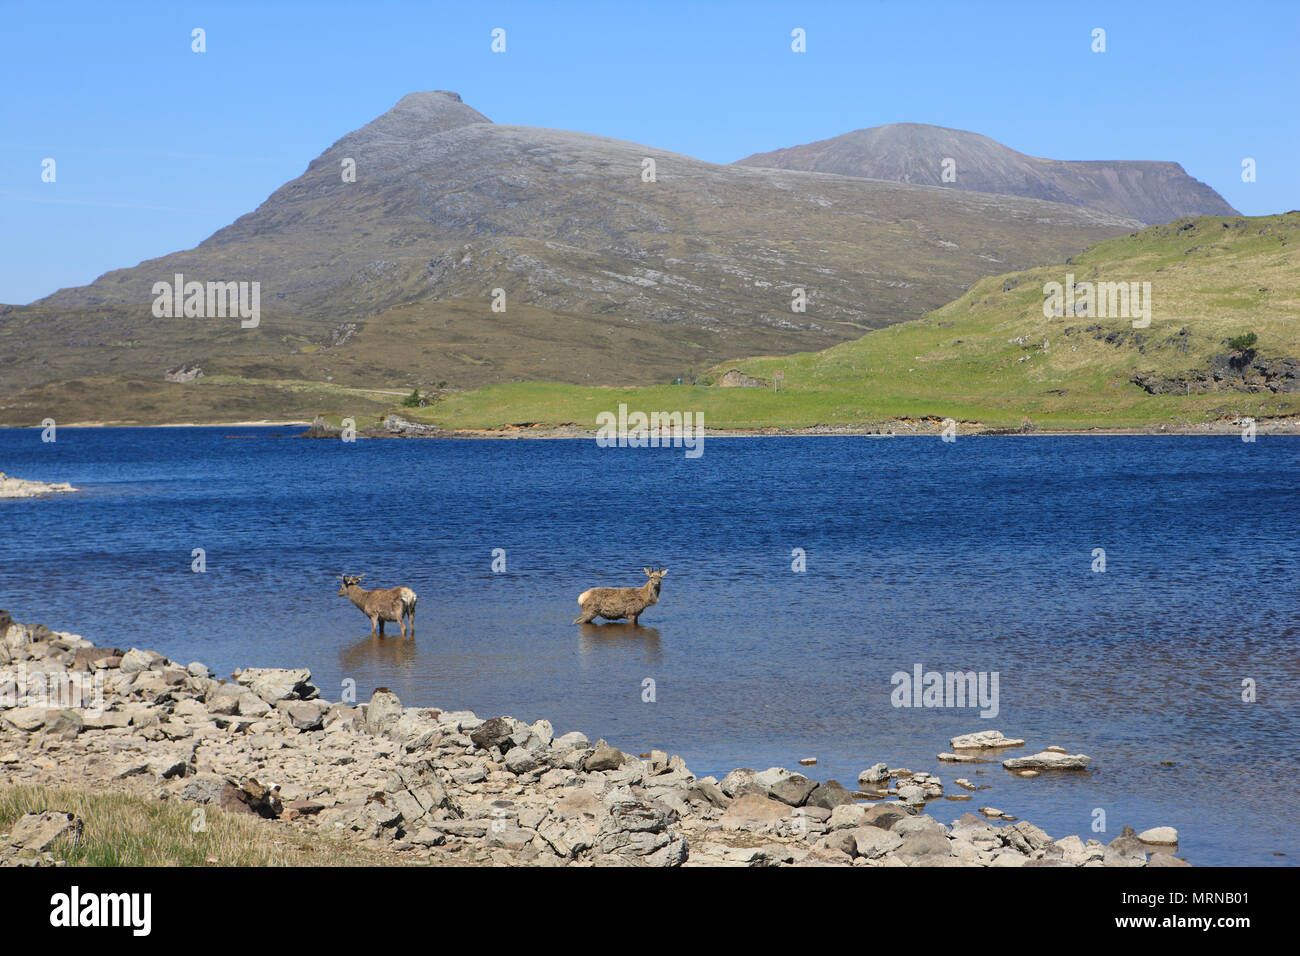 loch-assynt-uk-26-may-2018-summer-temper